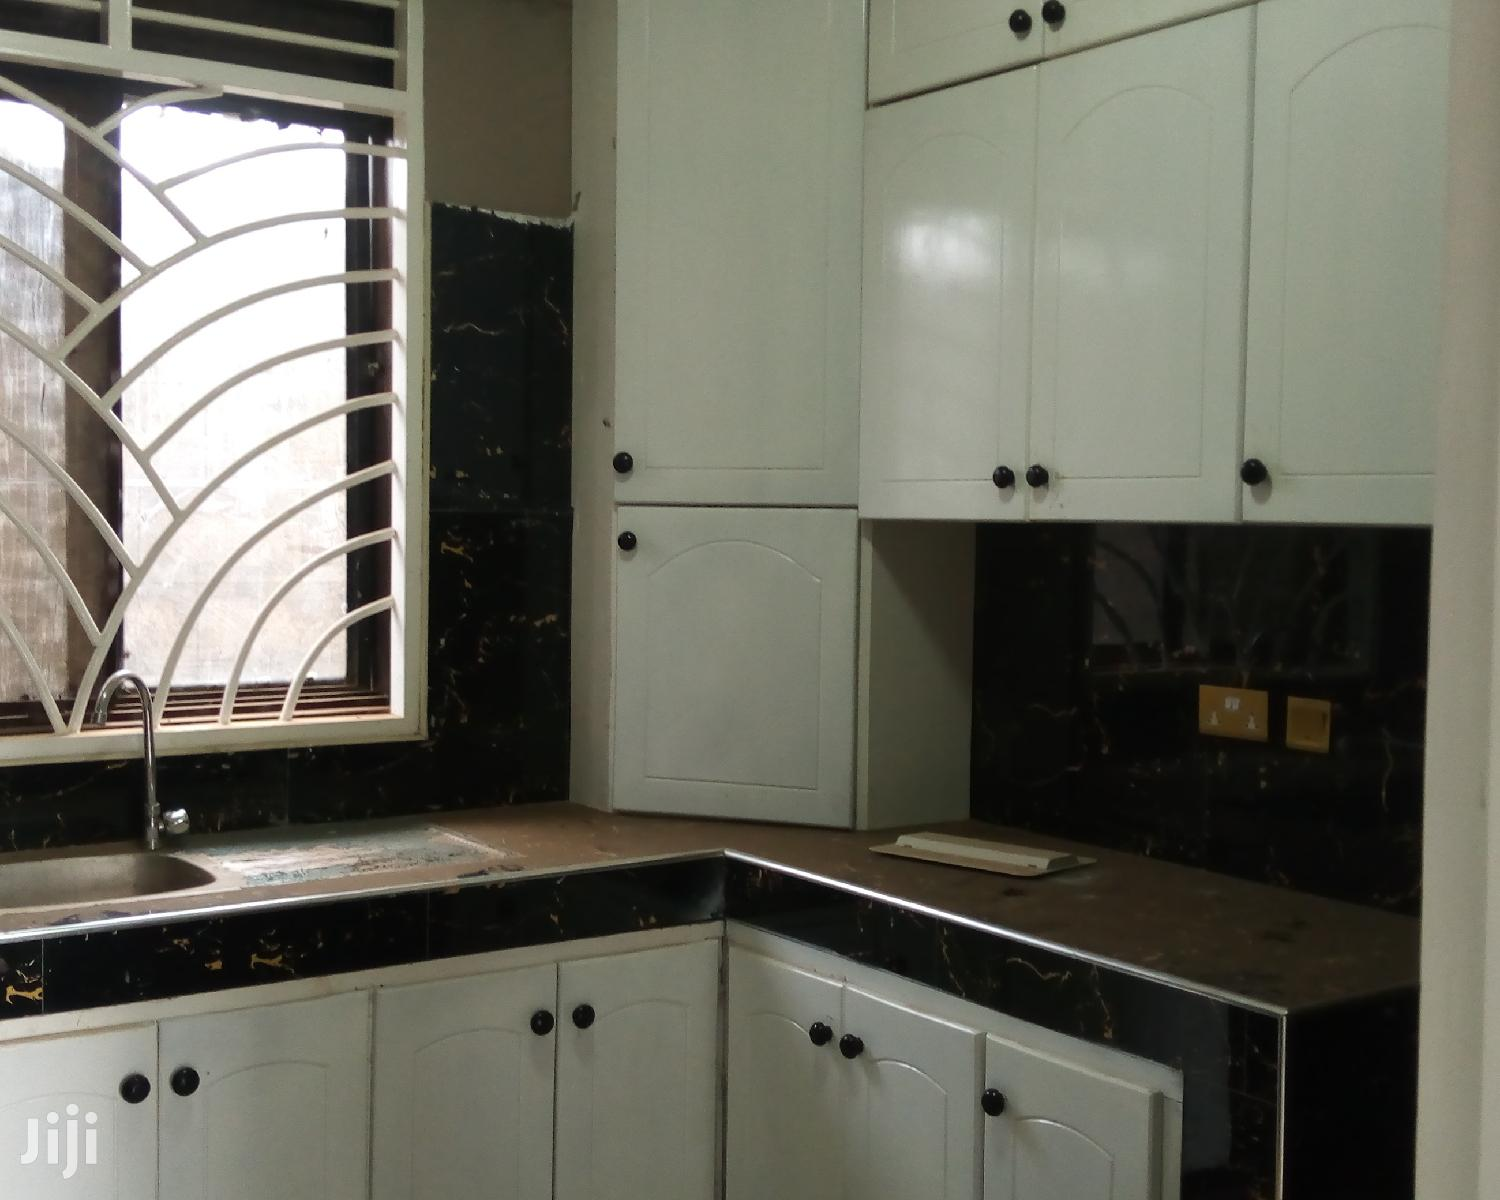 Duplex Is on Rent in Kungu Kyanja | Houses & Apartments For Rent for sale in Kampala, Central Region, Uganda